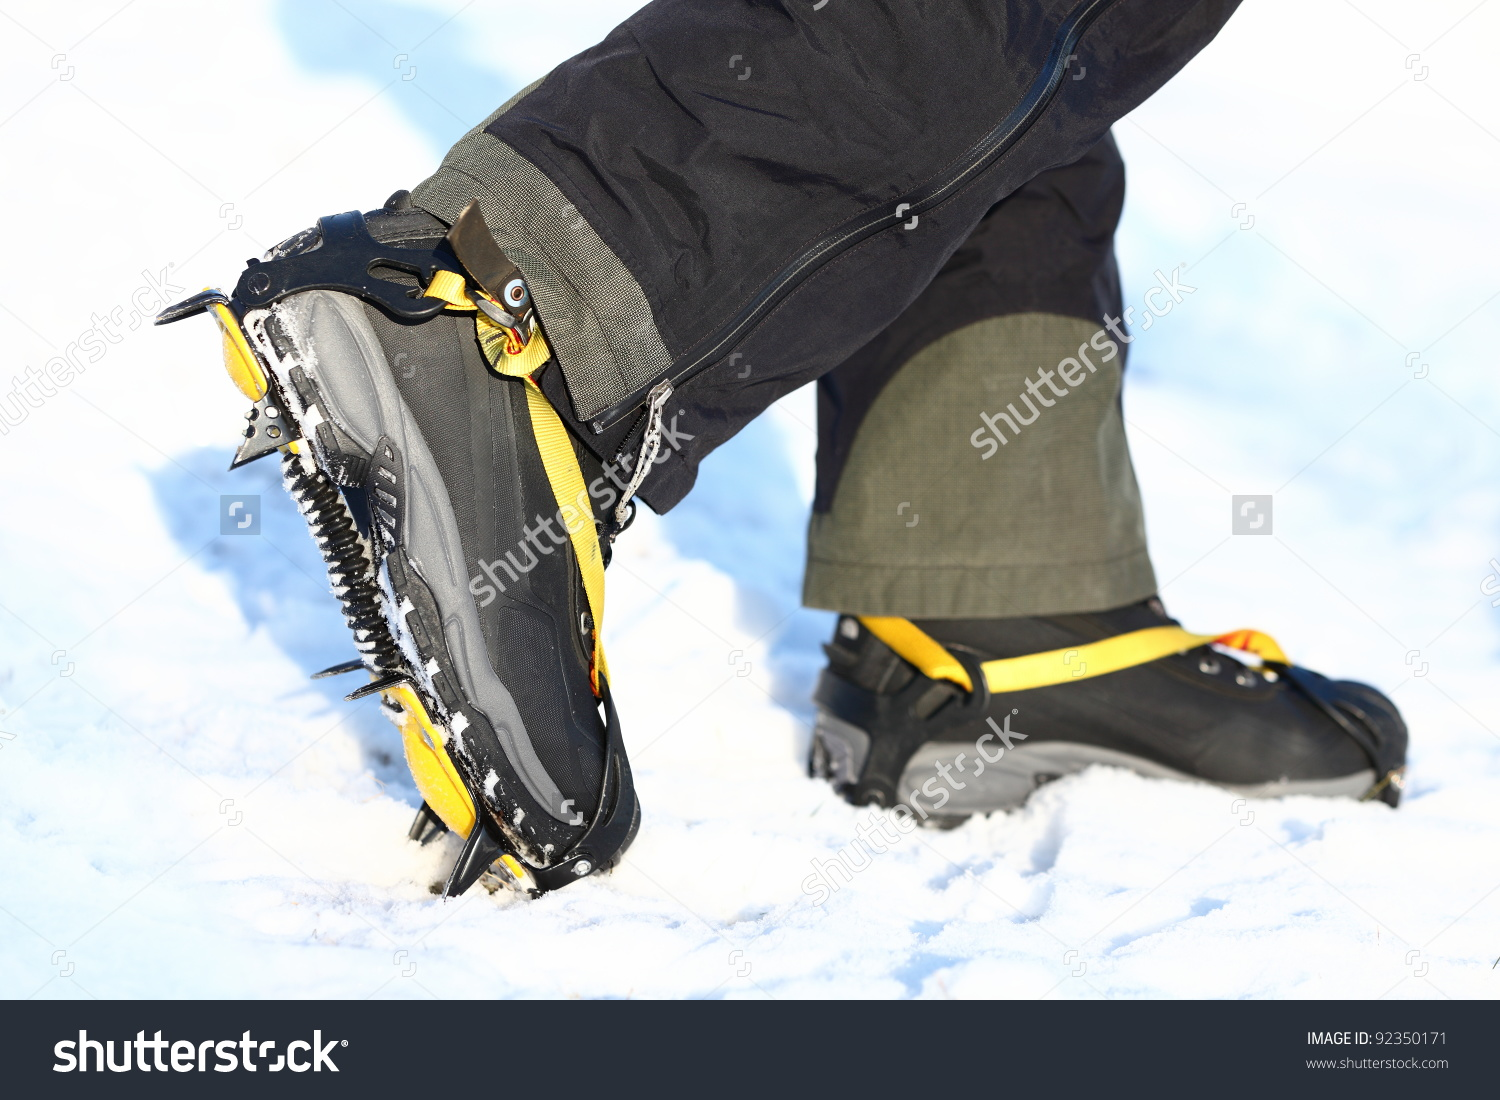 Crampons Shoes Walking On Ice Snow Stock Photo 92350171.